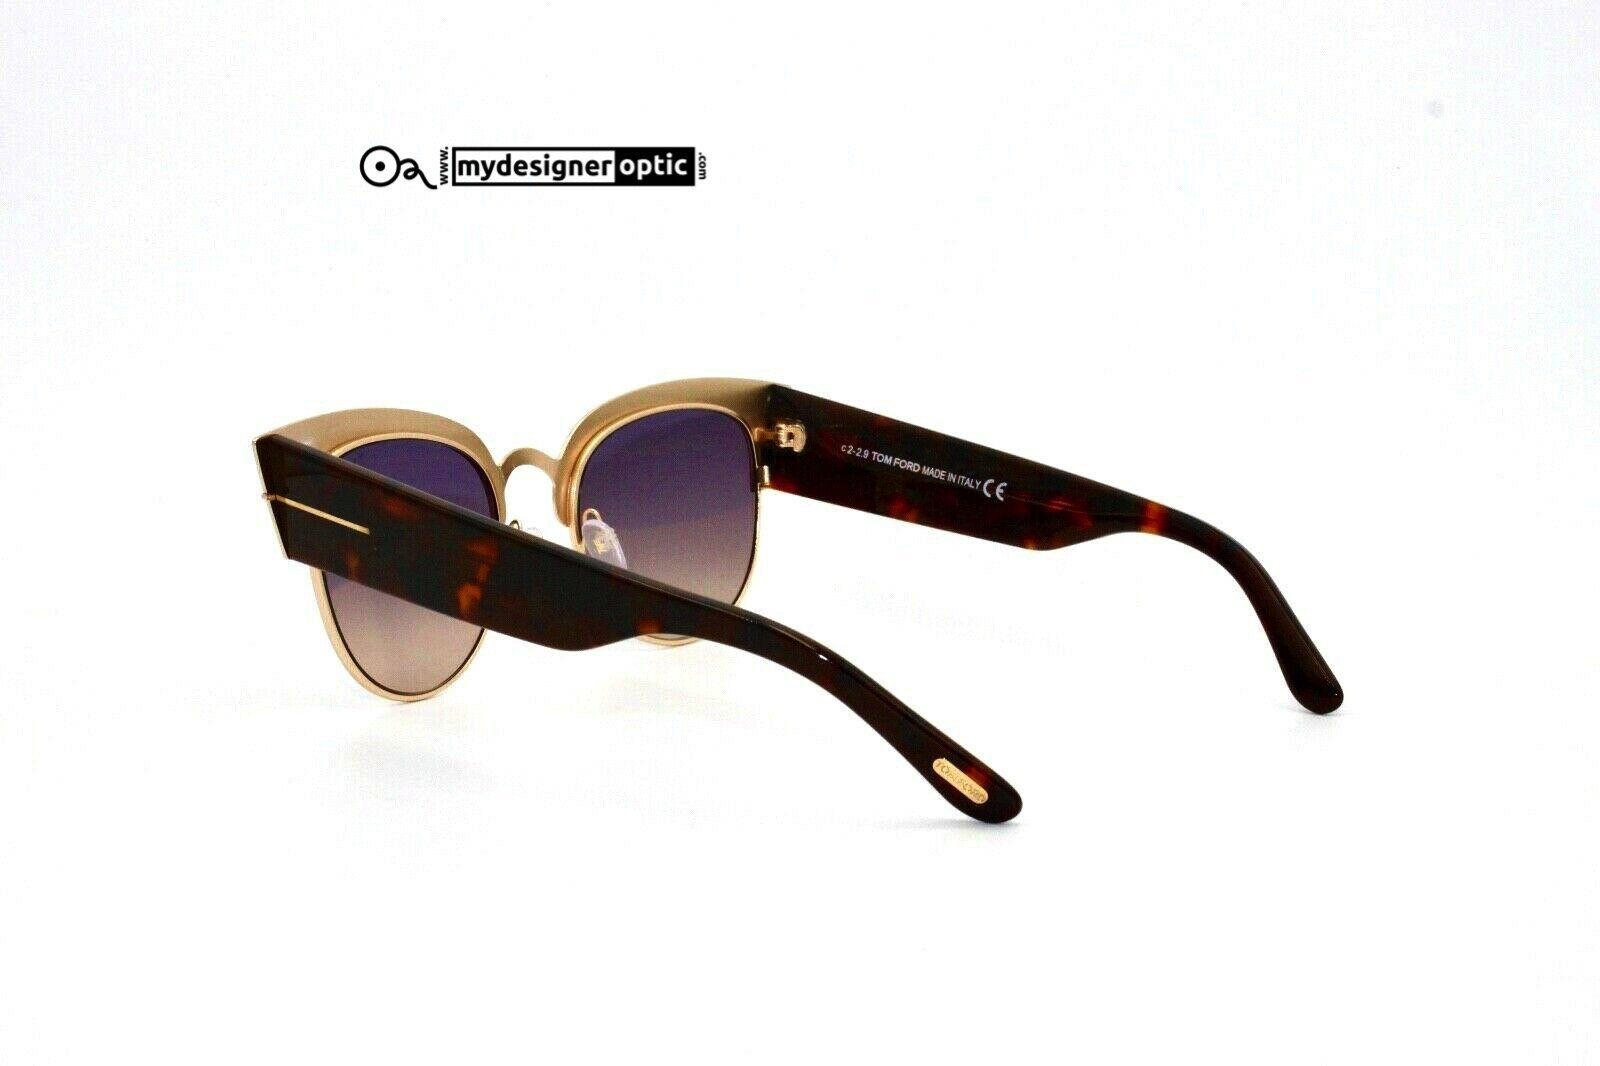 Tom Ford Sunglasses Alexandra-02 TF607 74B 51-21 145 .2 c2-2.9 Made in Italy - Mydesigneroptic